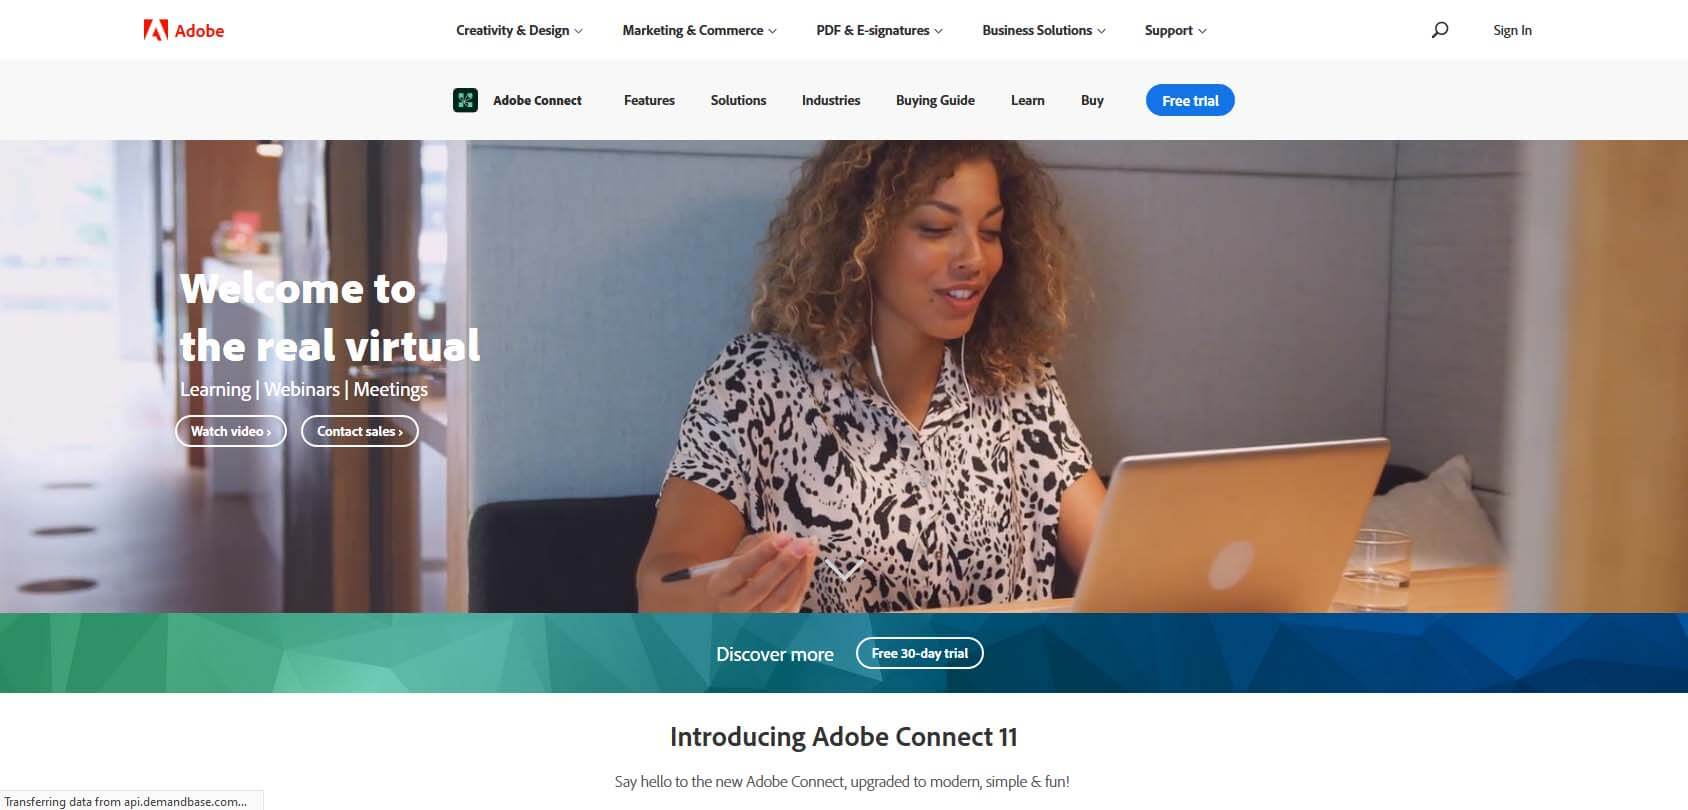 Adobe Connect homepage